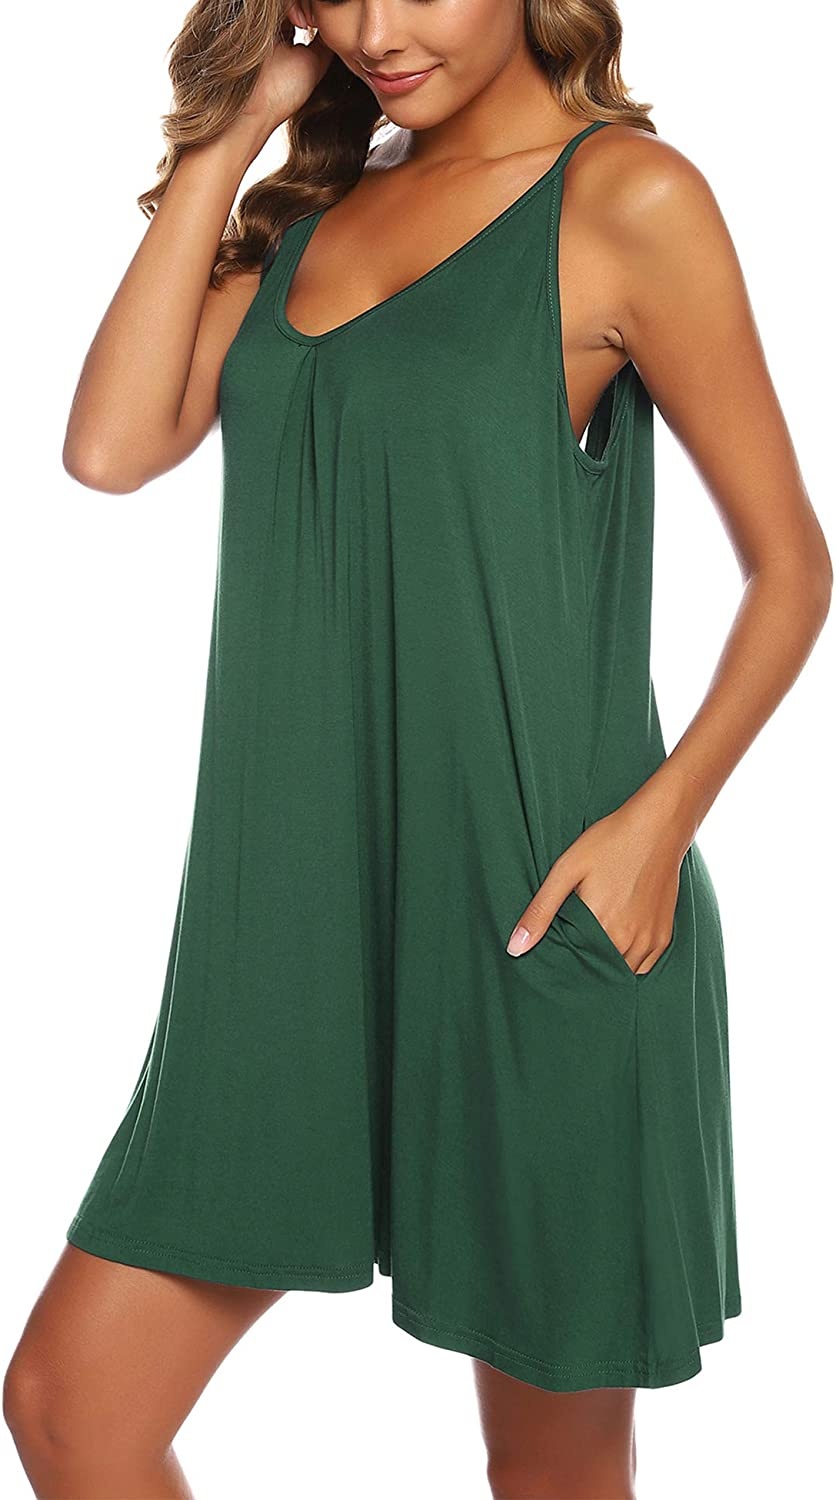 BAIXIN Women's Halter Summer Dresses Sleeveless Nightgown Sexy Sleeping Gown with Pockets Plus Size S-XXL